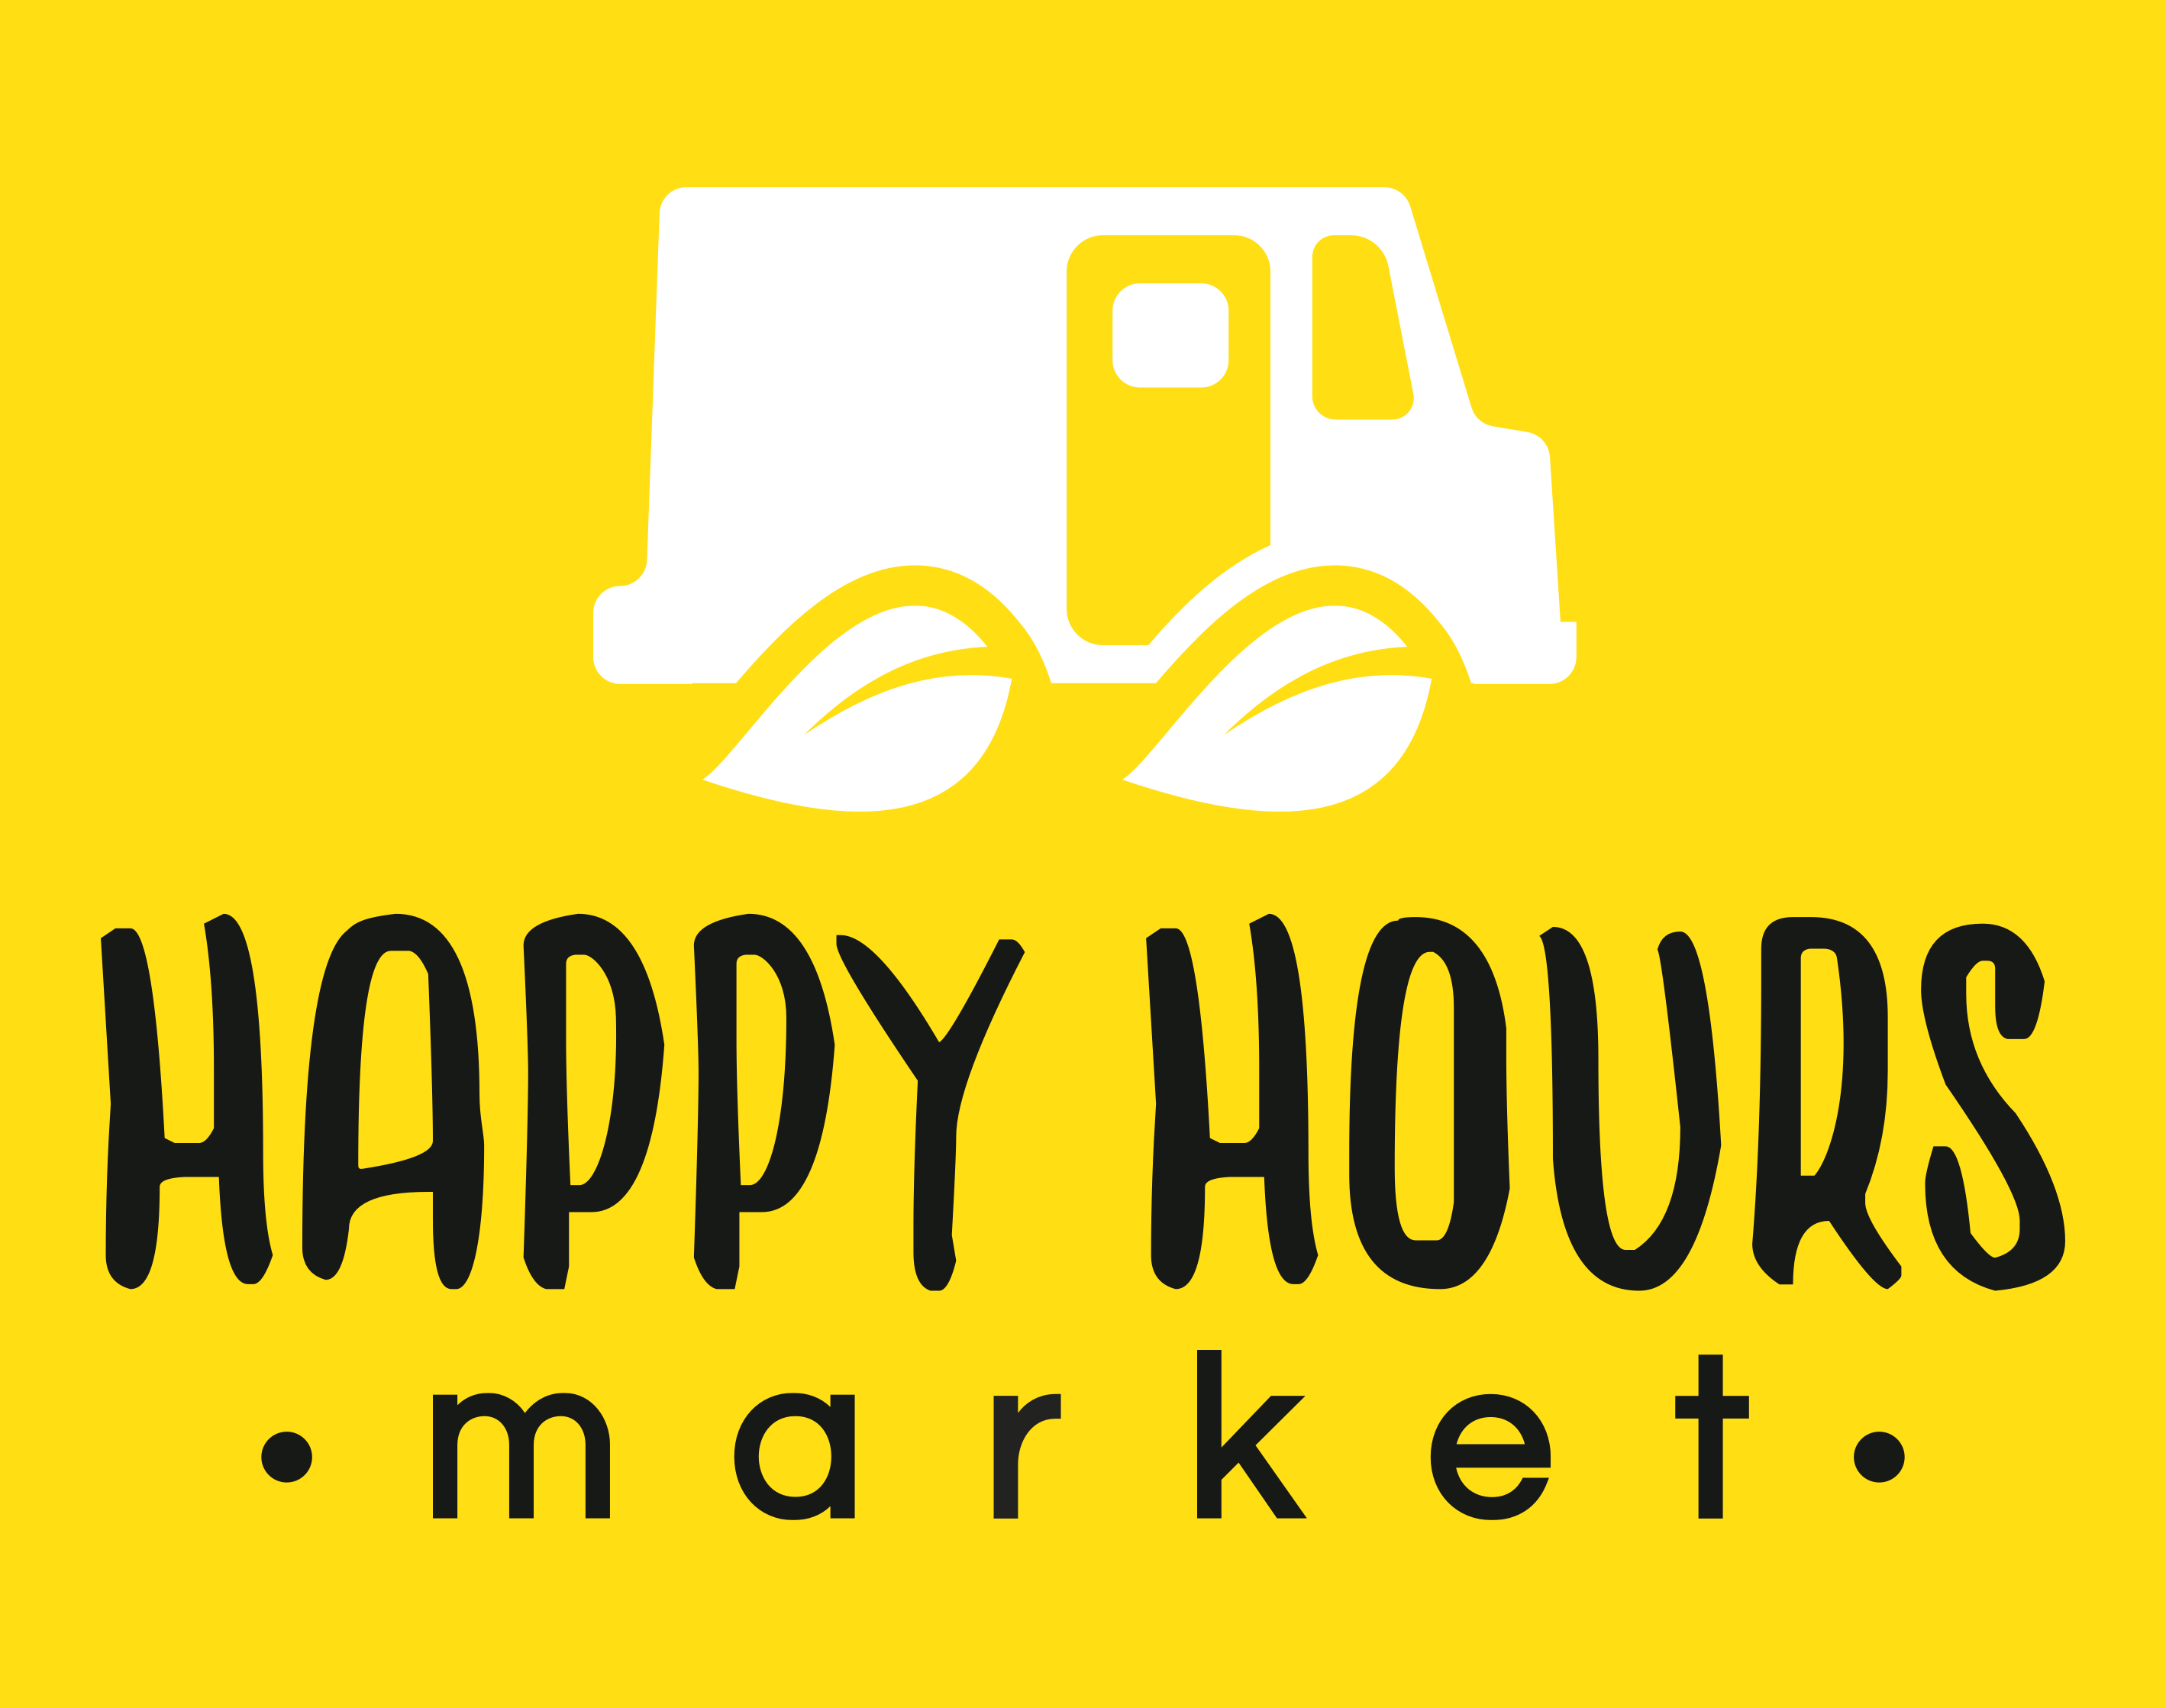 Happy Hours Market